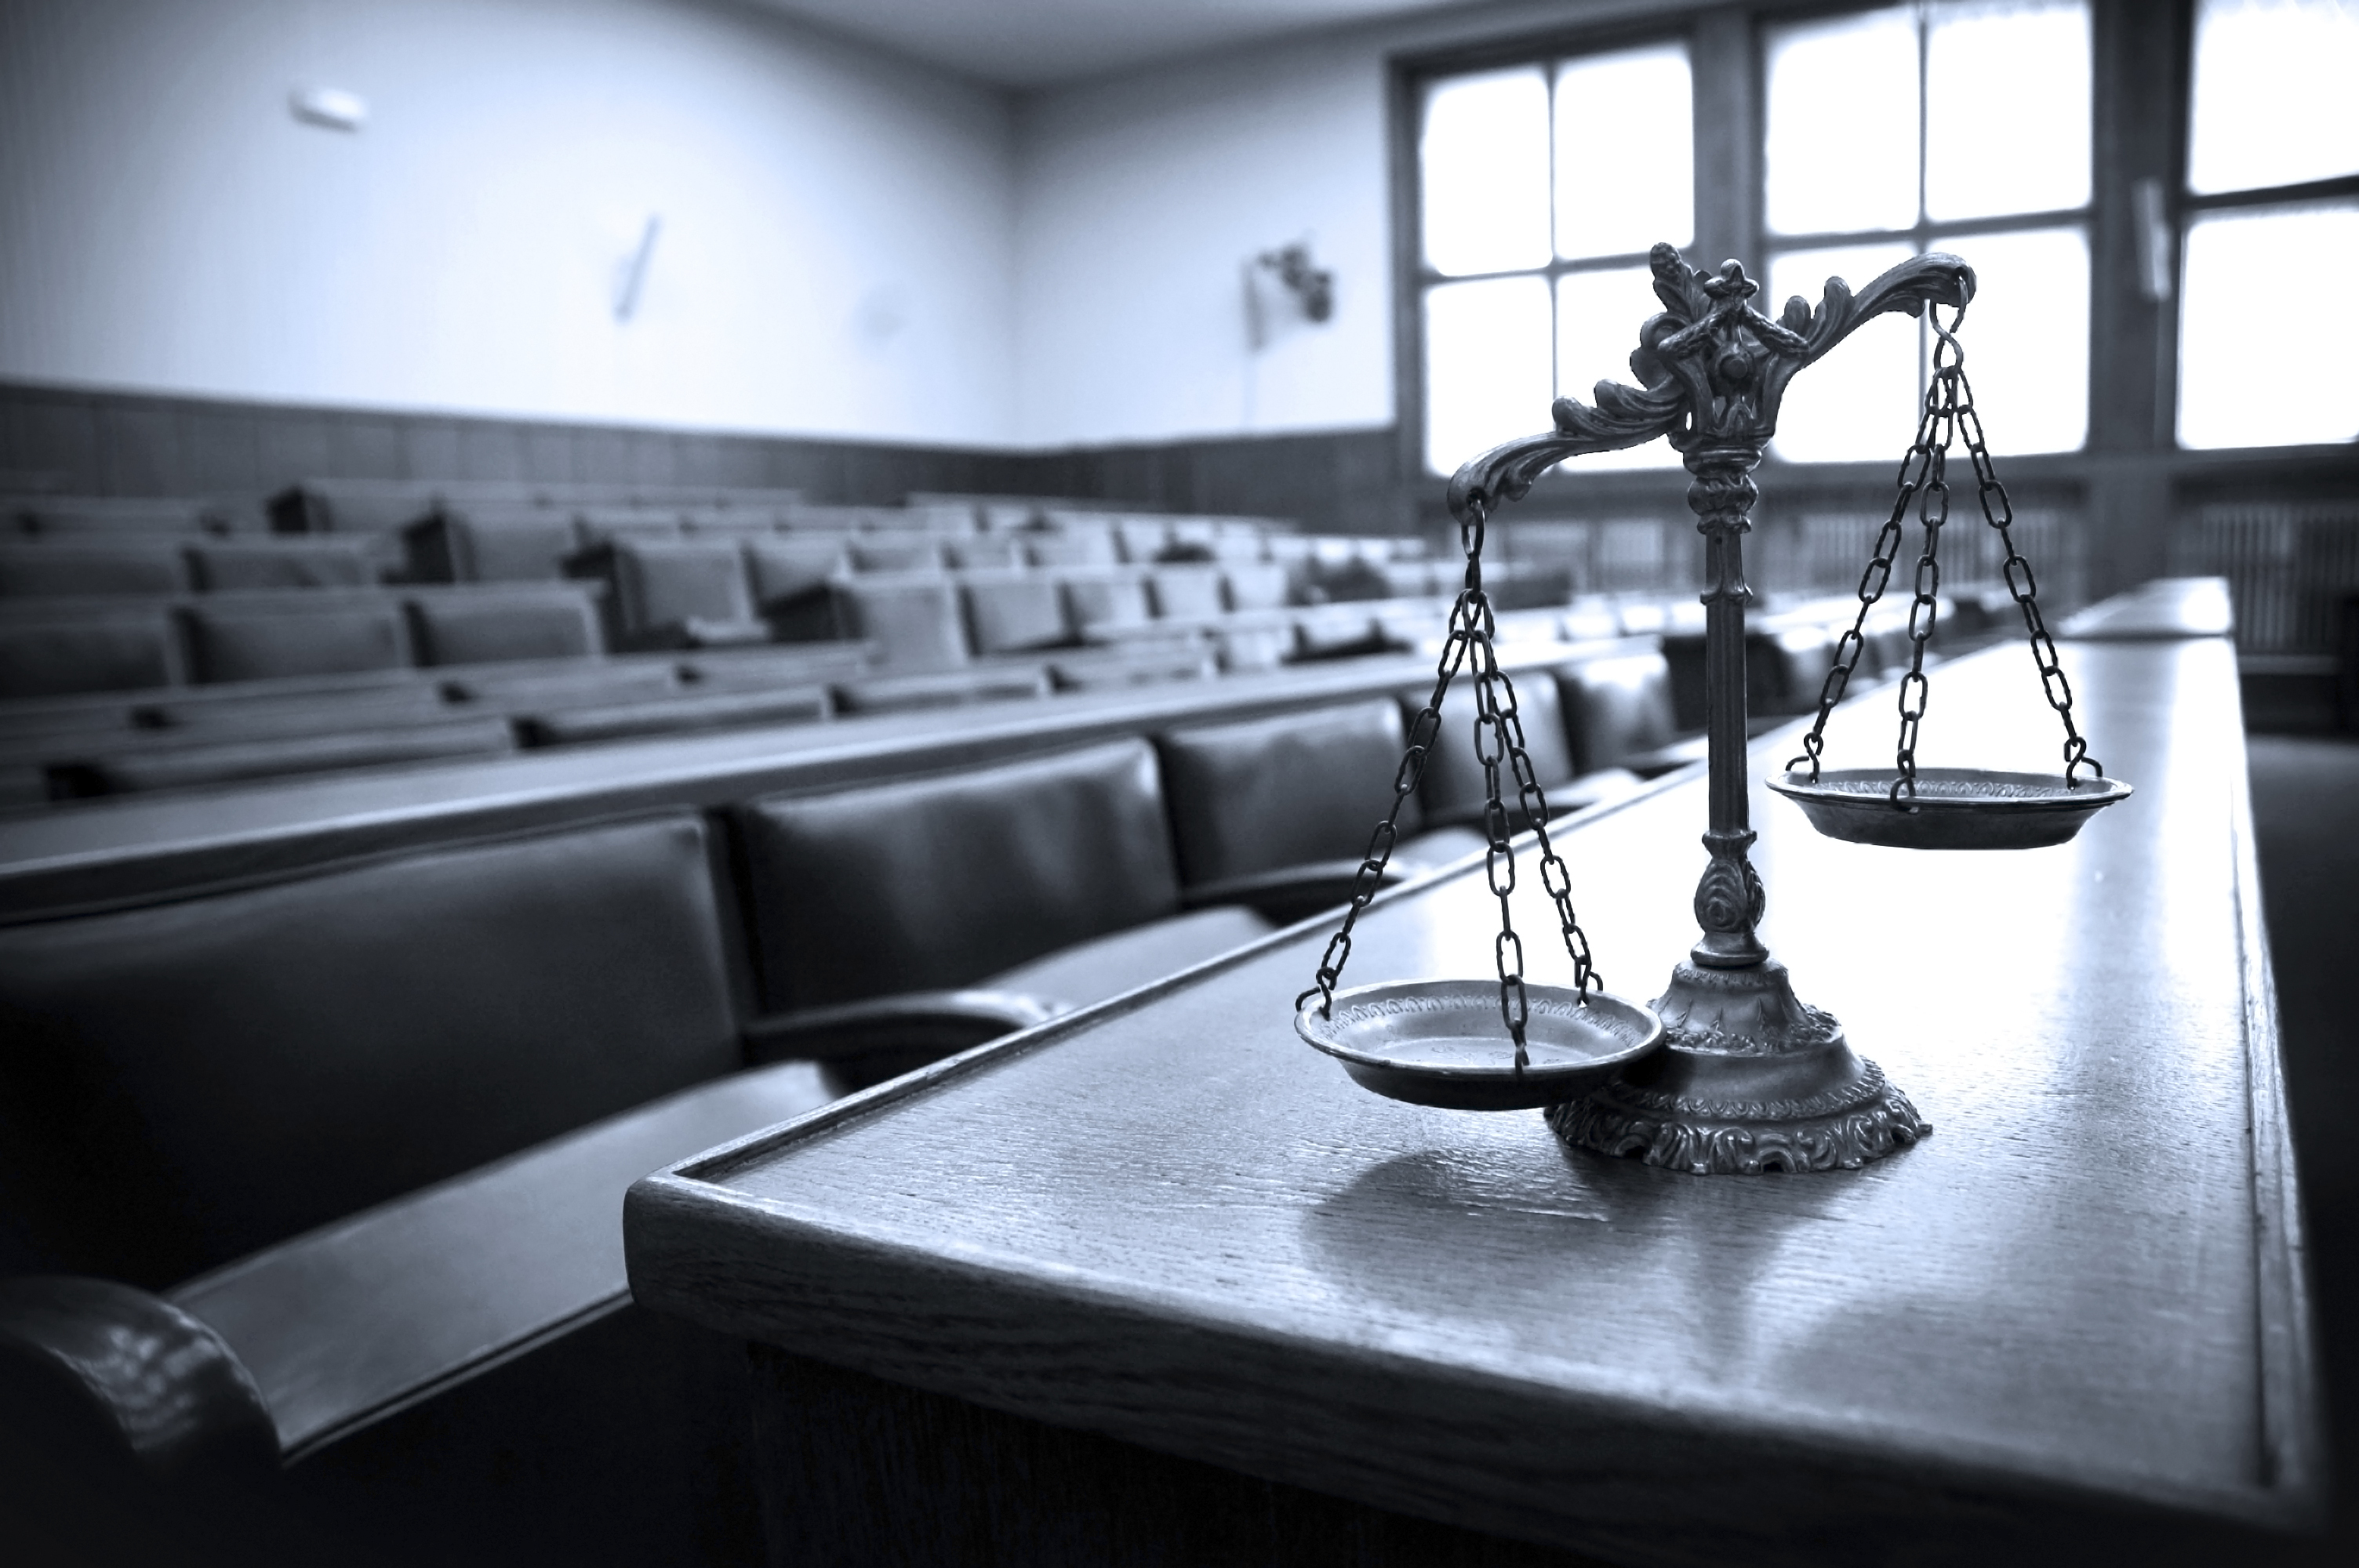 A courtroom is depicted in black-and-white. Shutterstock image via tlegend